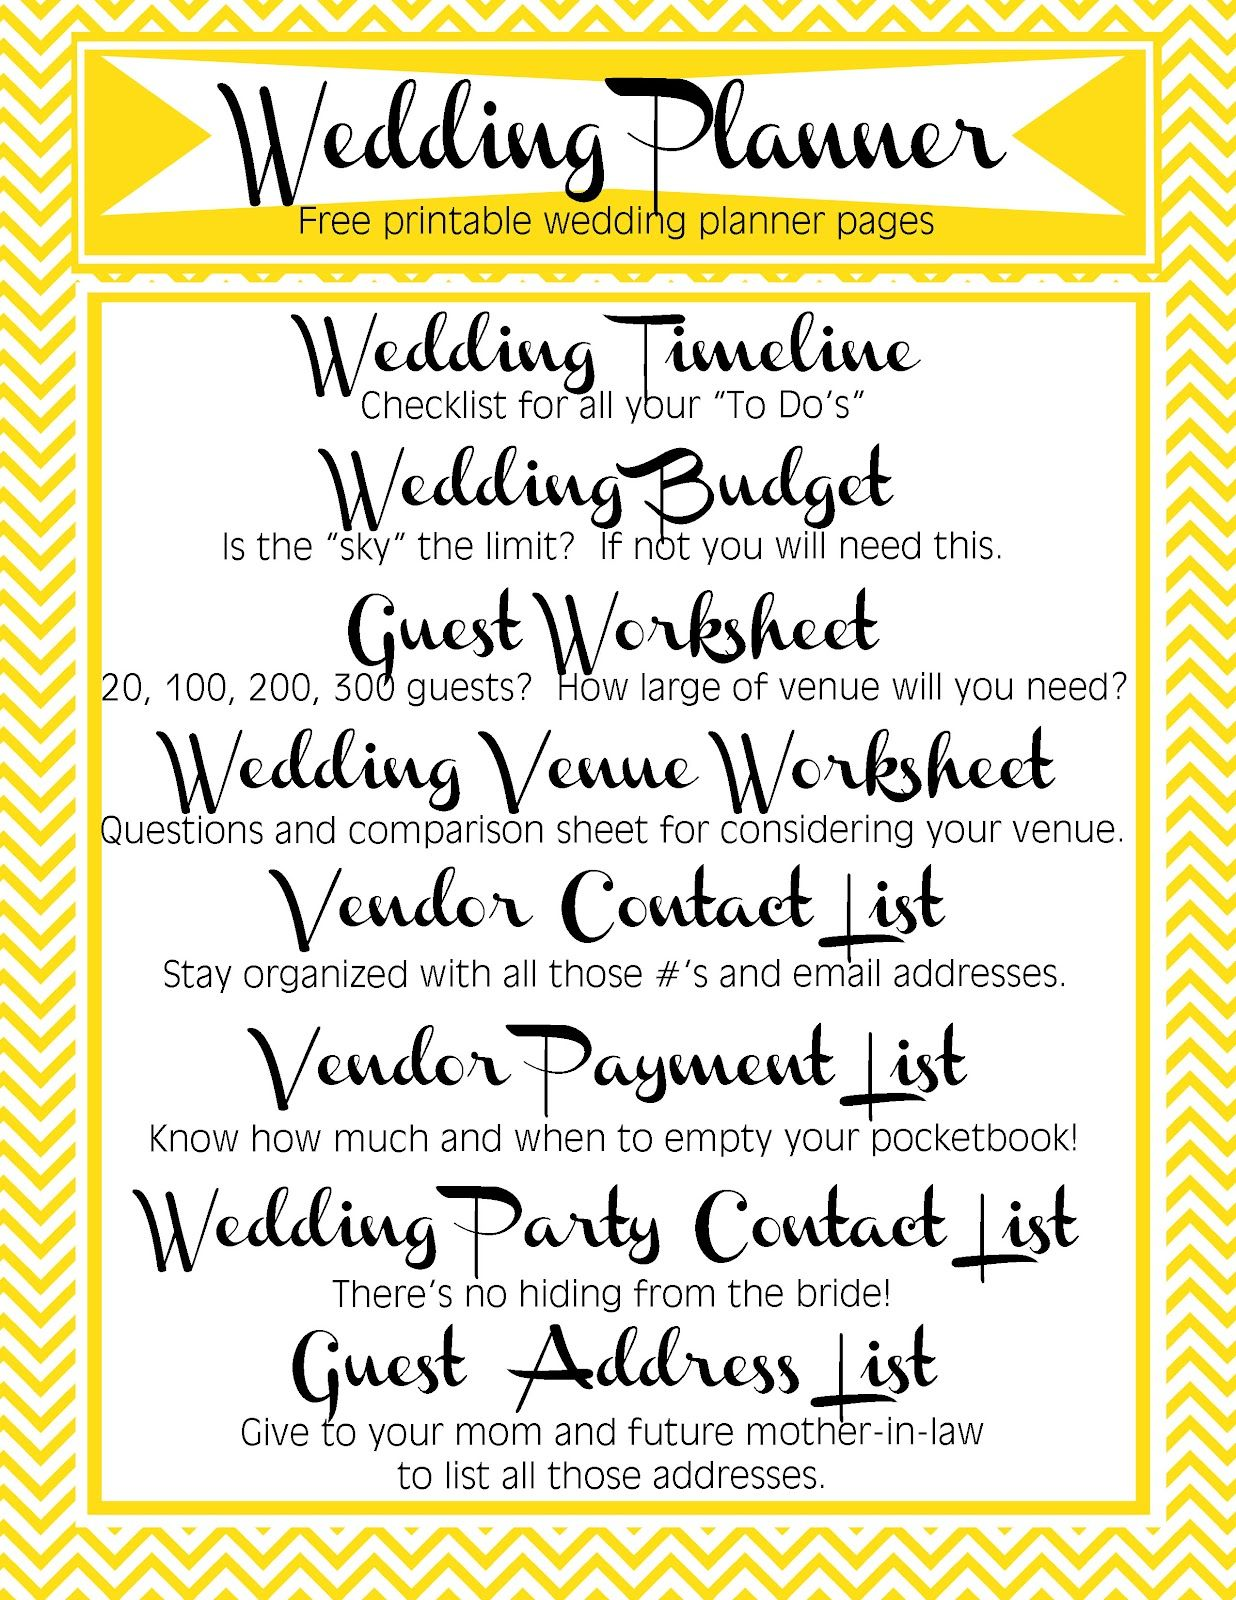 Free Printable Wedding Planner Includes Timeline Budget Guest Worksheet Used To Determine Wedding Planner Printables Wedding Planner List Wedding Printables